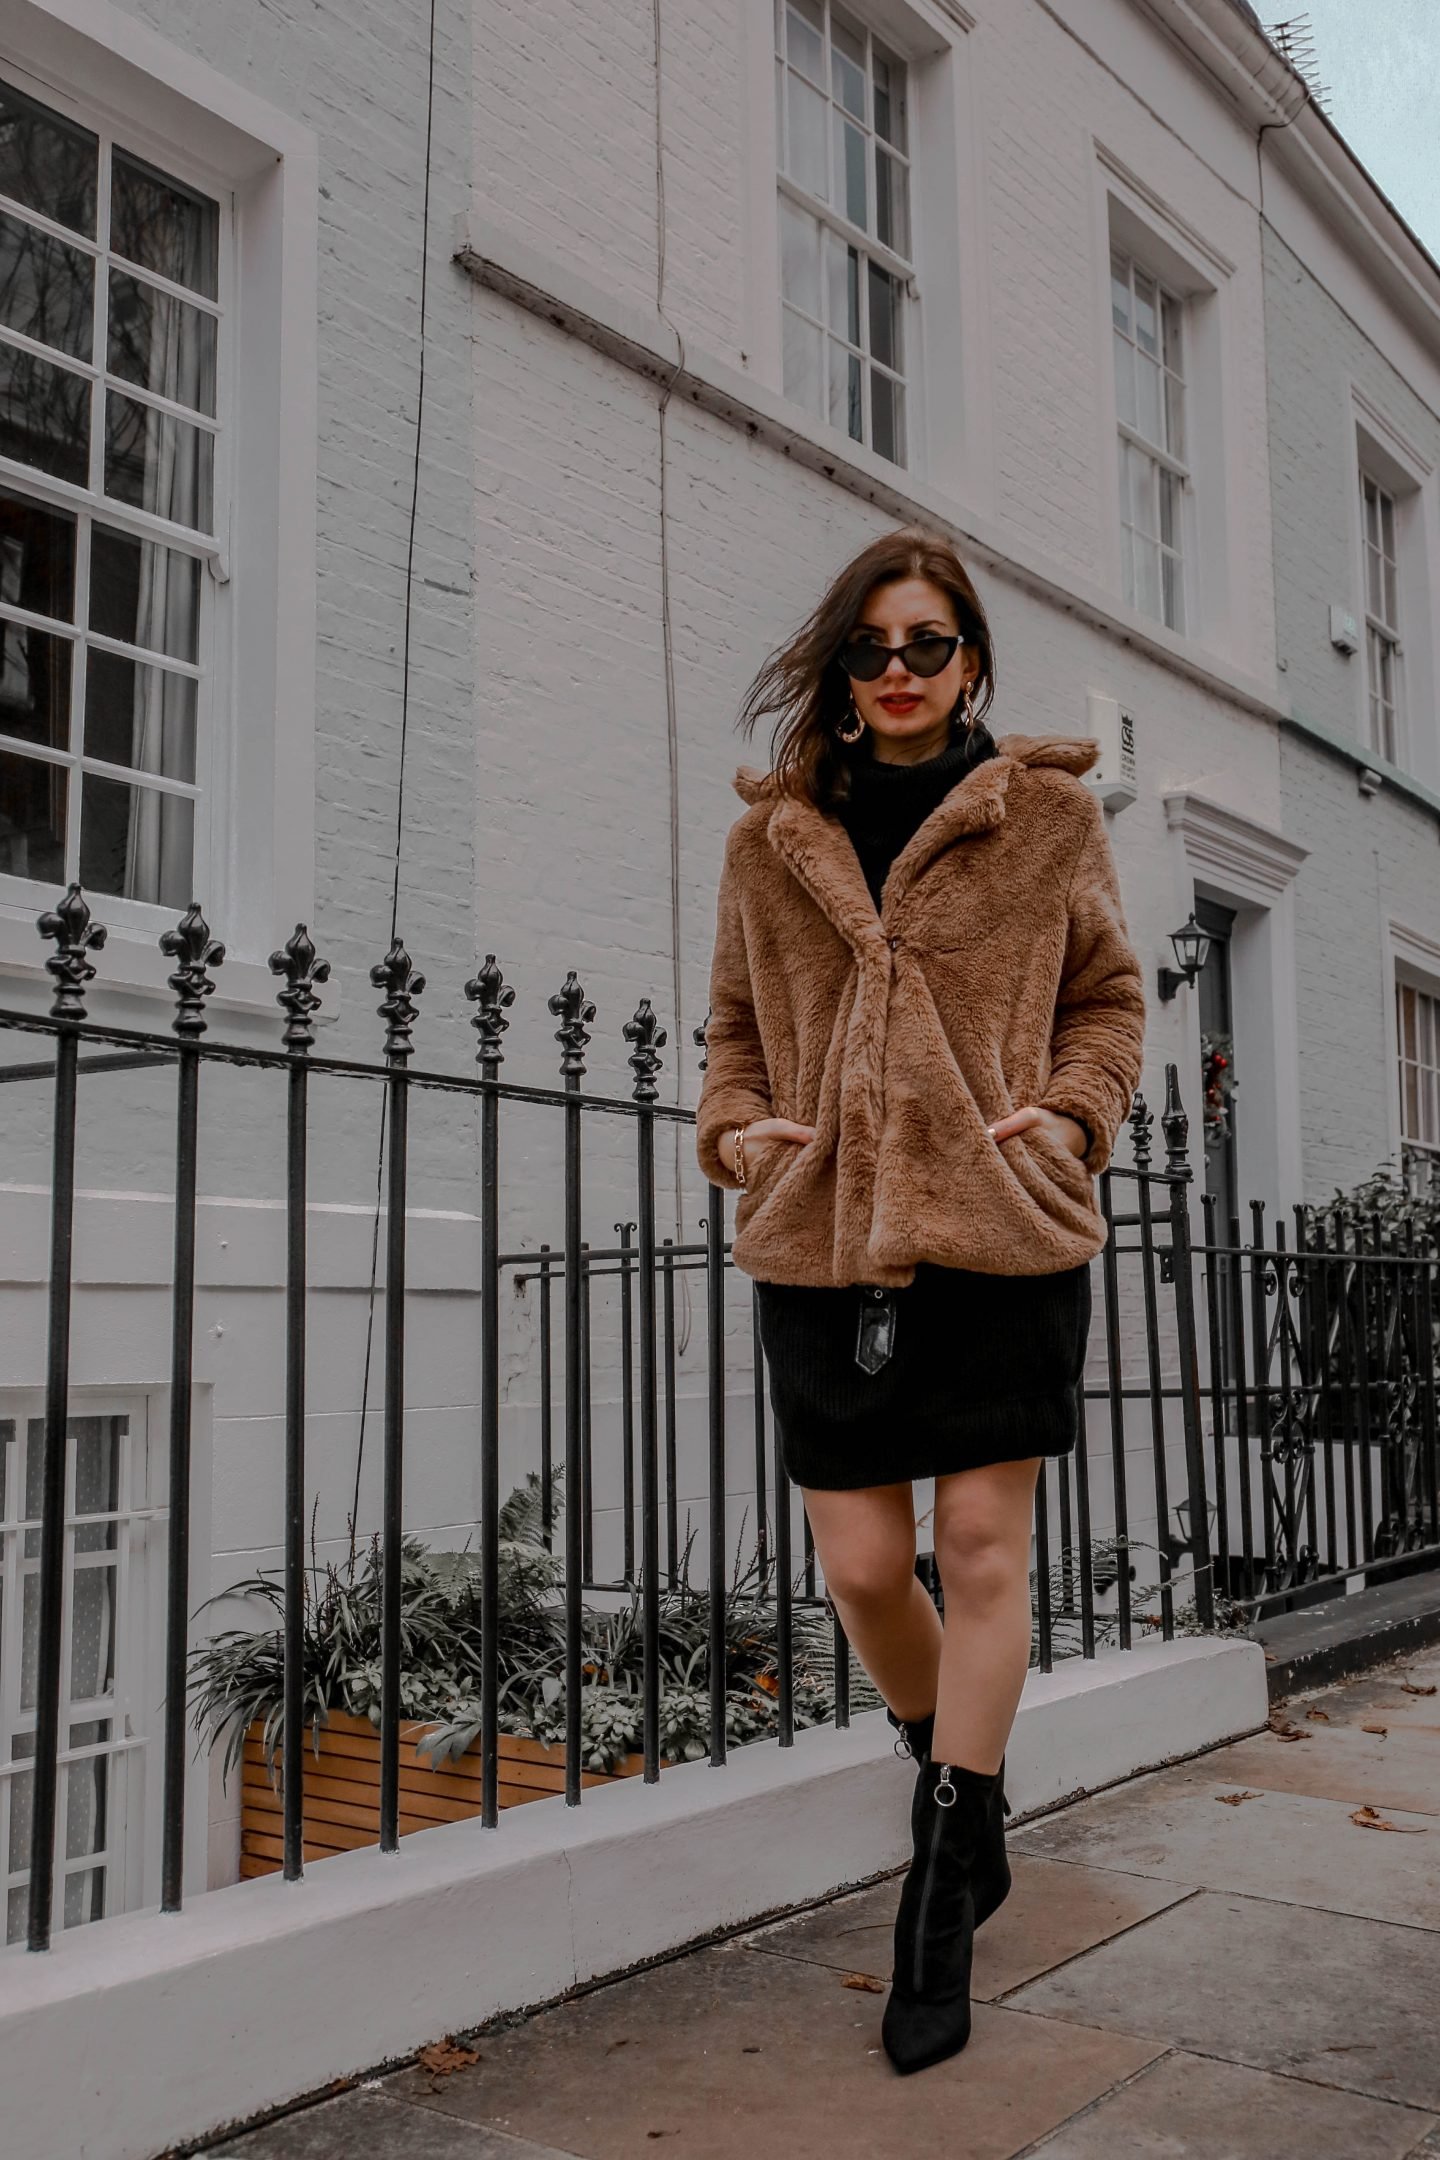 How to Wear the Teddy Bear Trend in 2 Ways